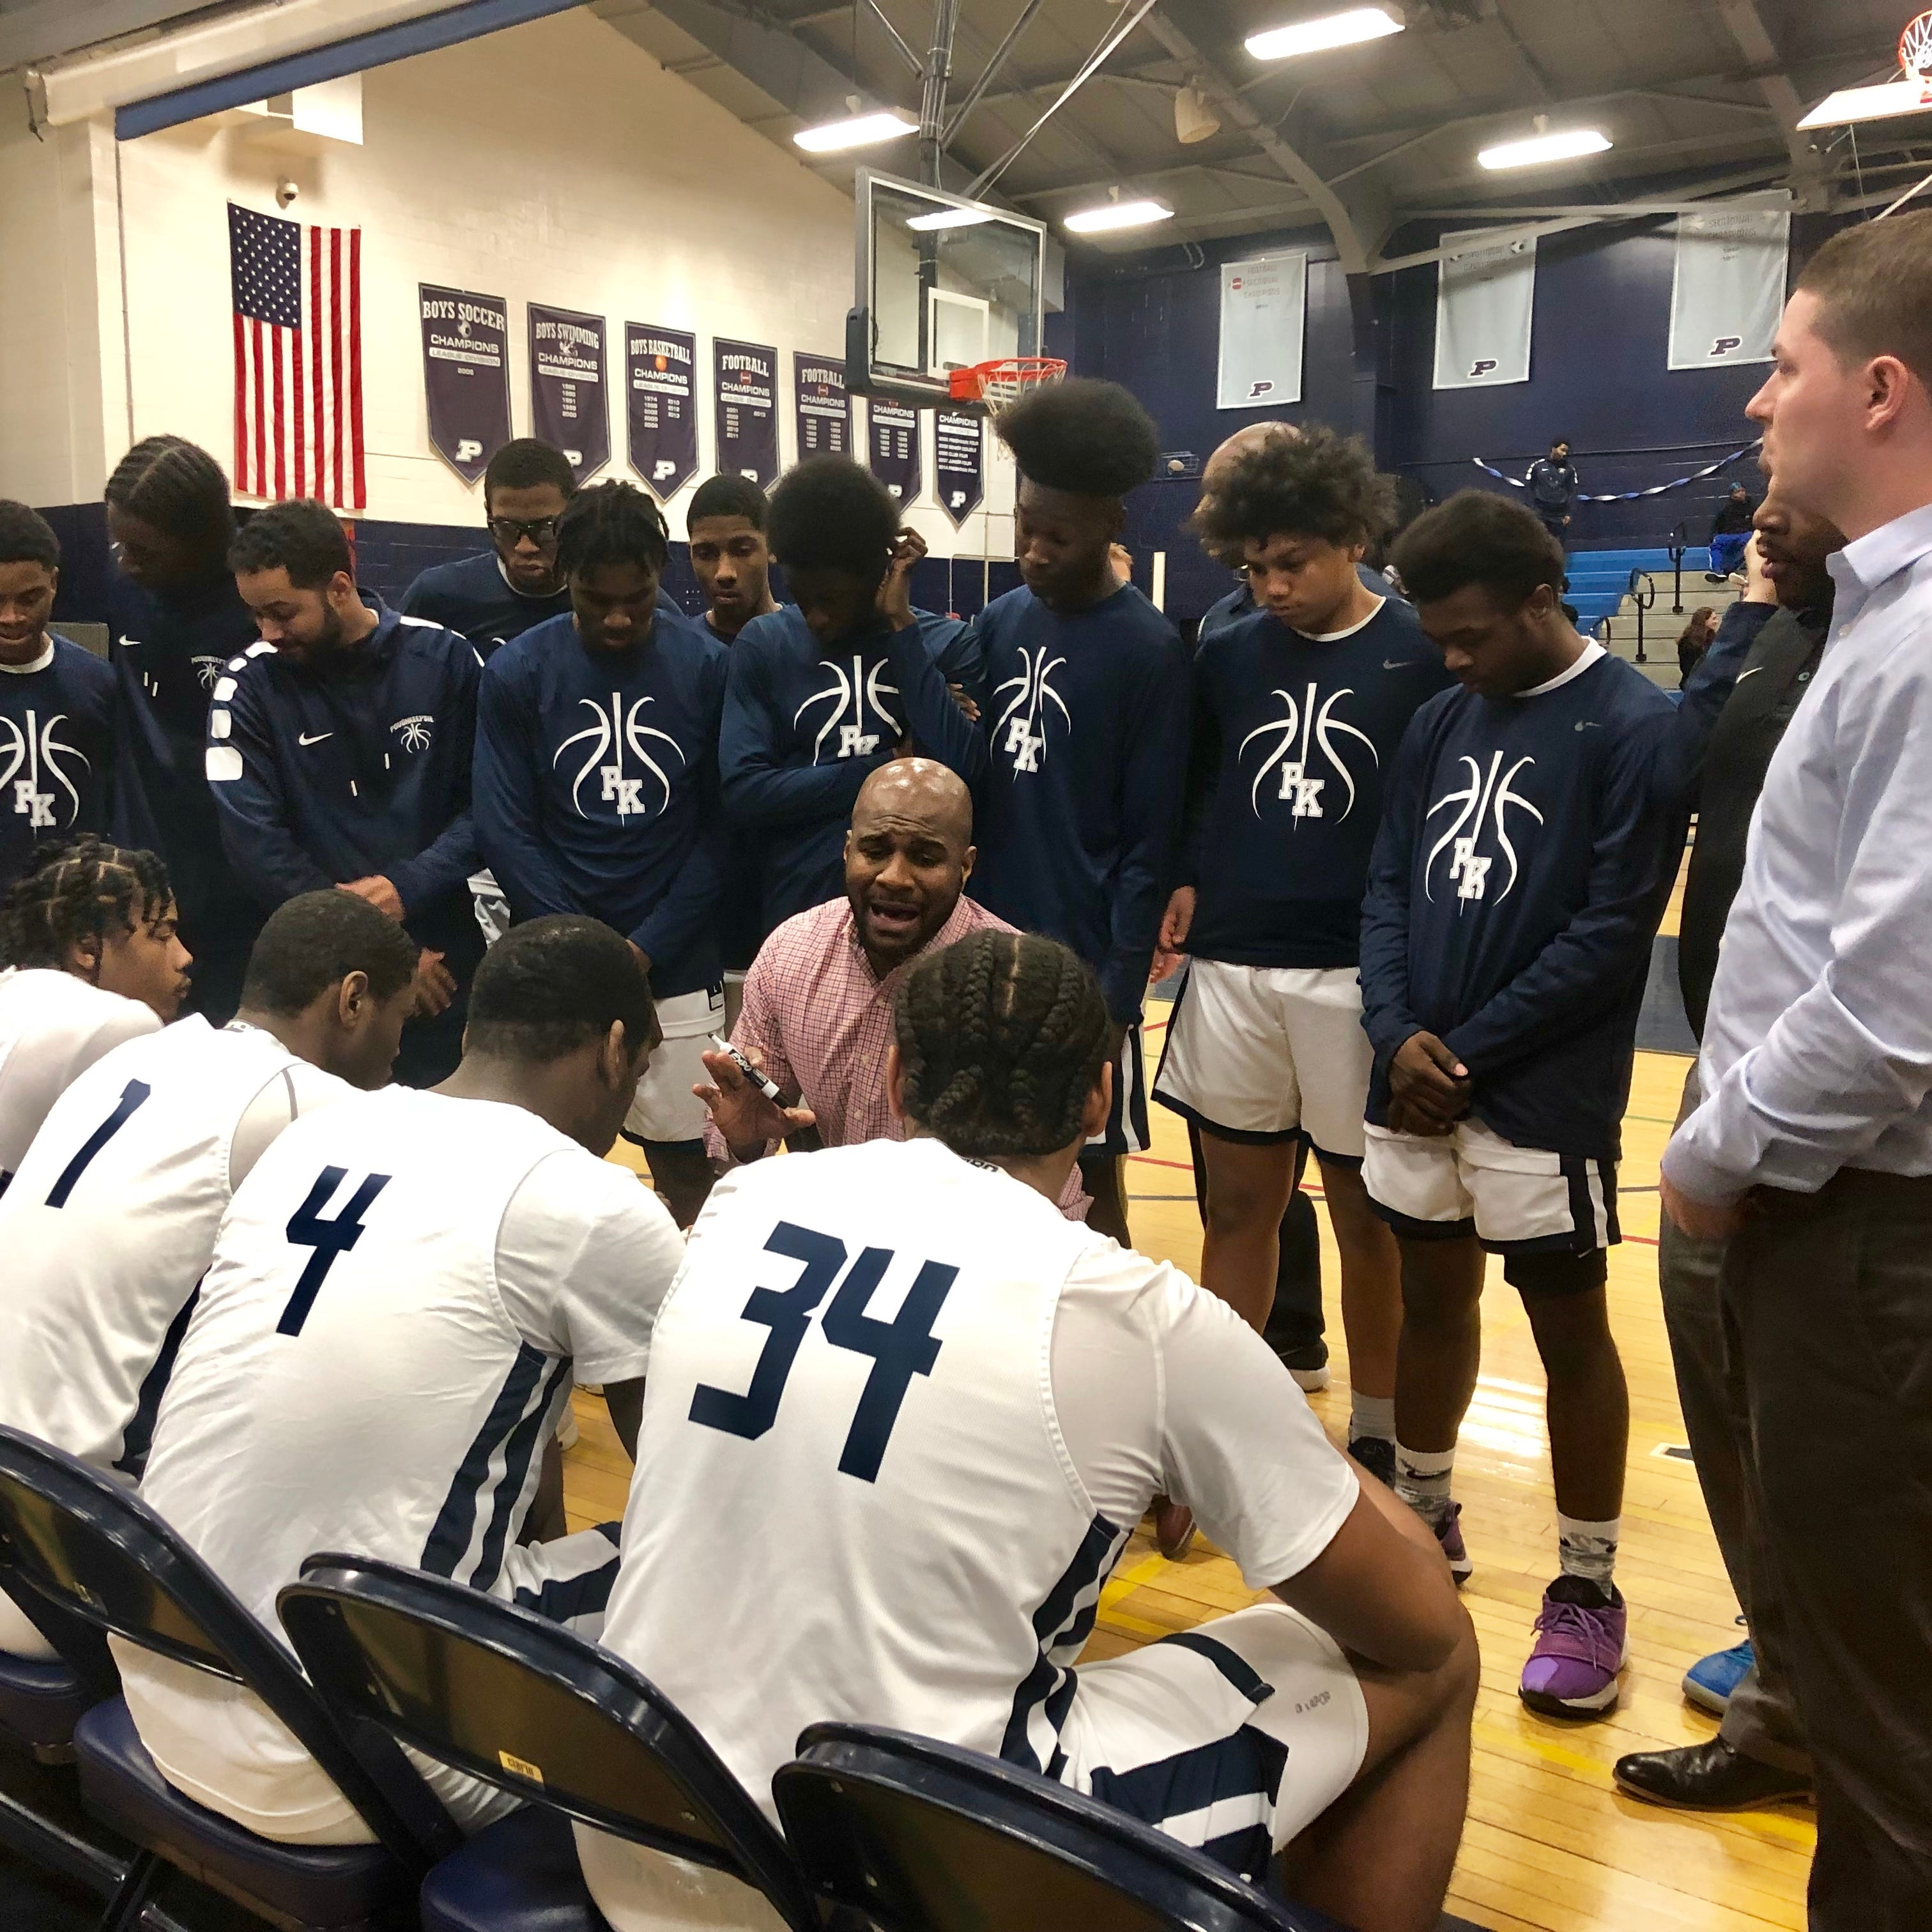 Poughkeepsie coach Cody Moffett discusses strategy with his boys basketball team during their Section 1 Class A playoff game against Pearl River.